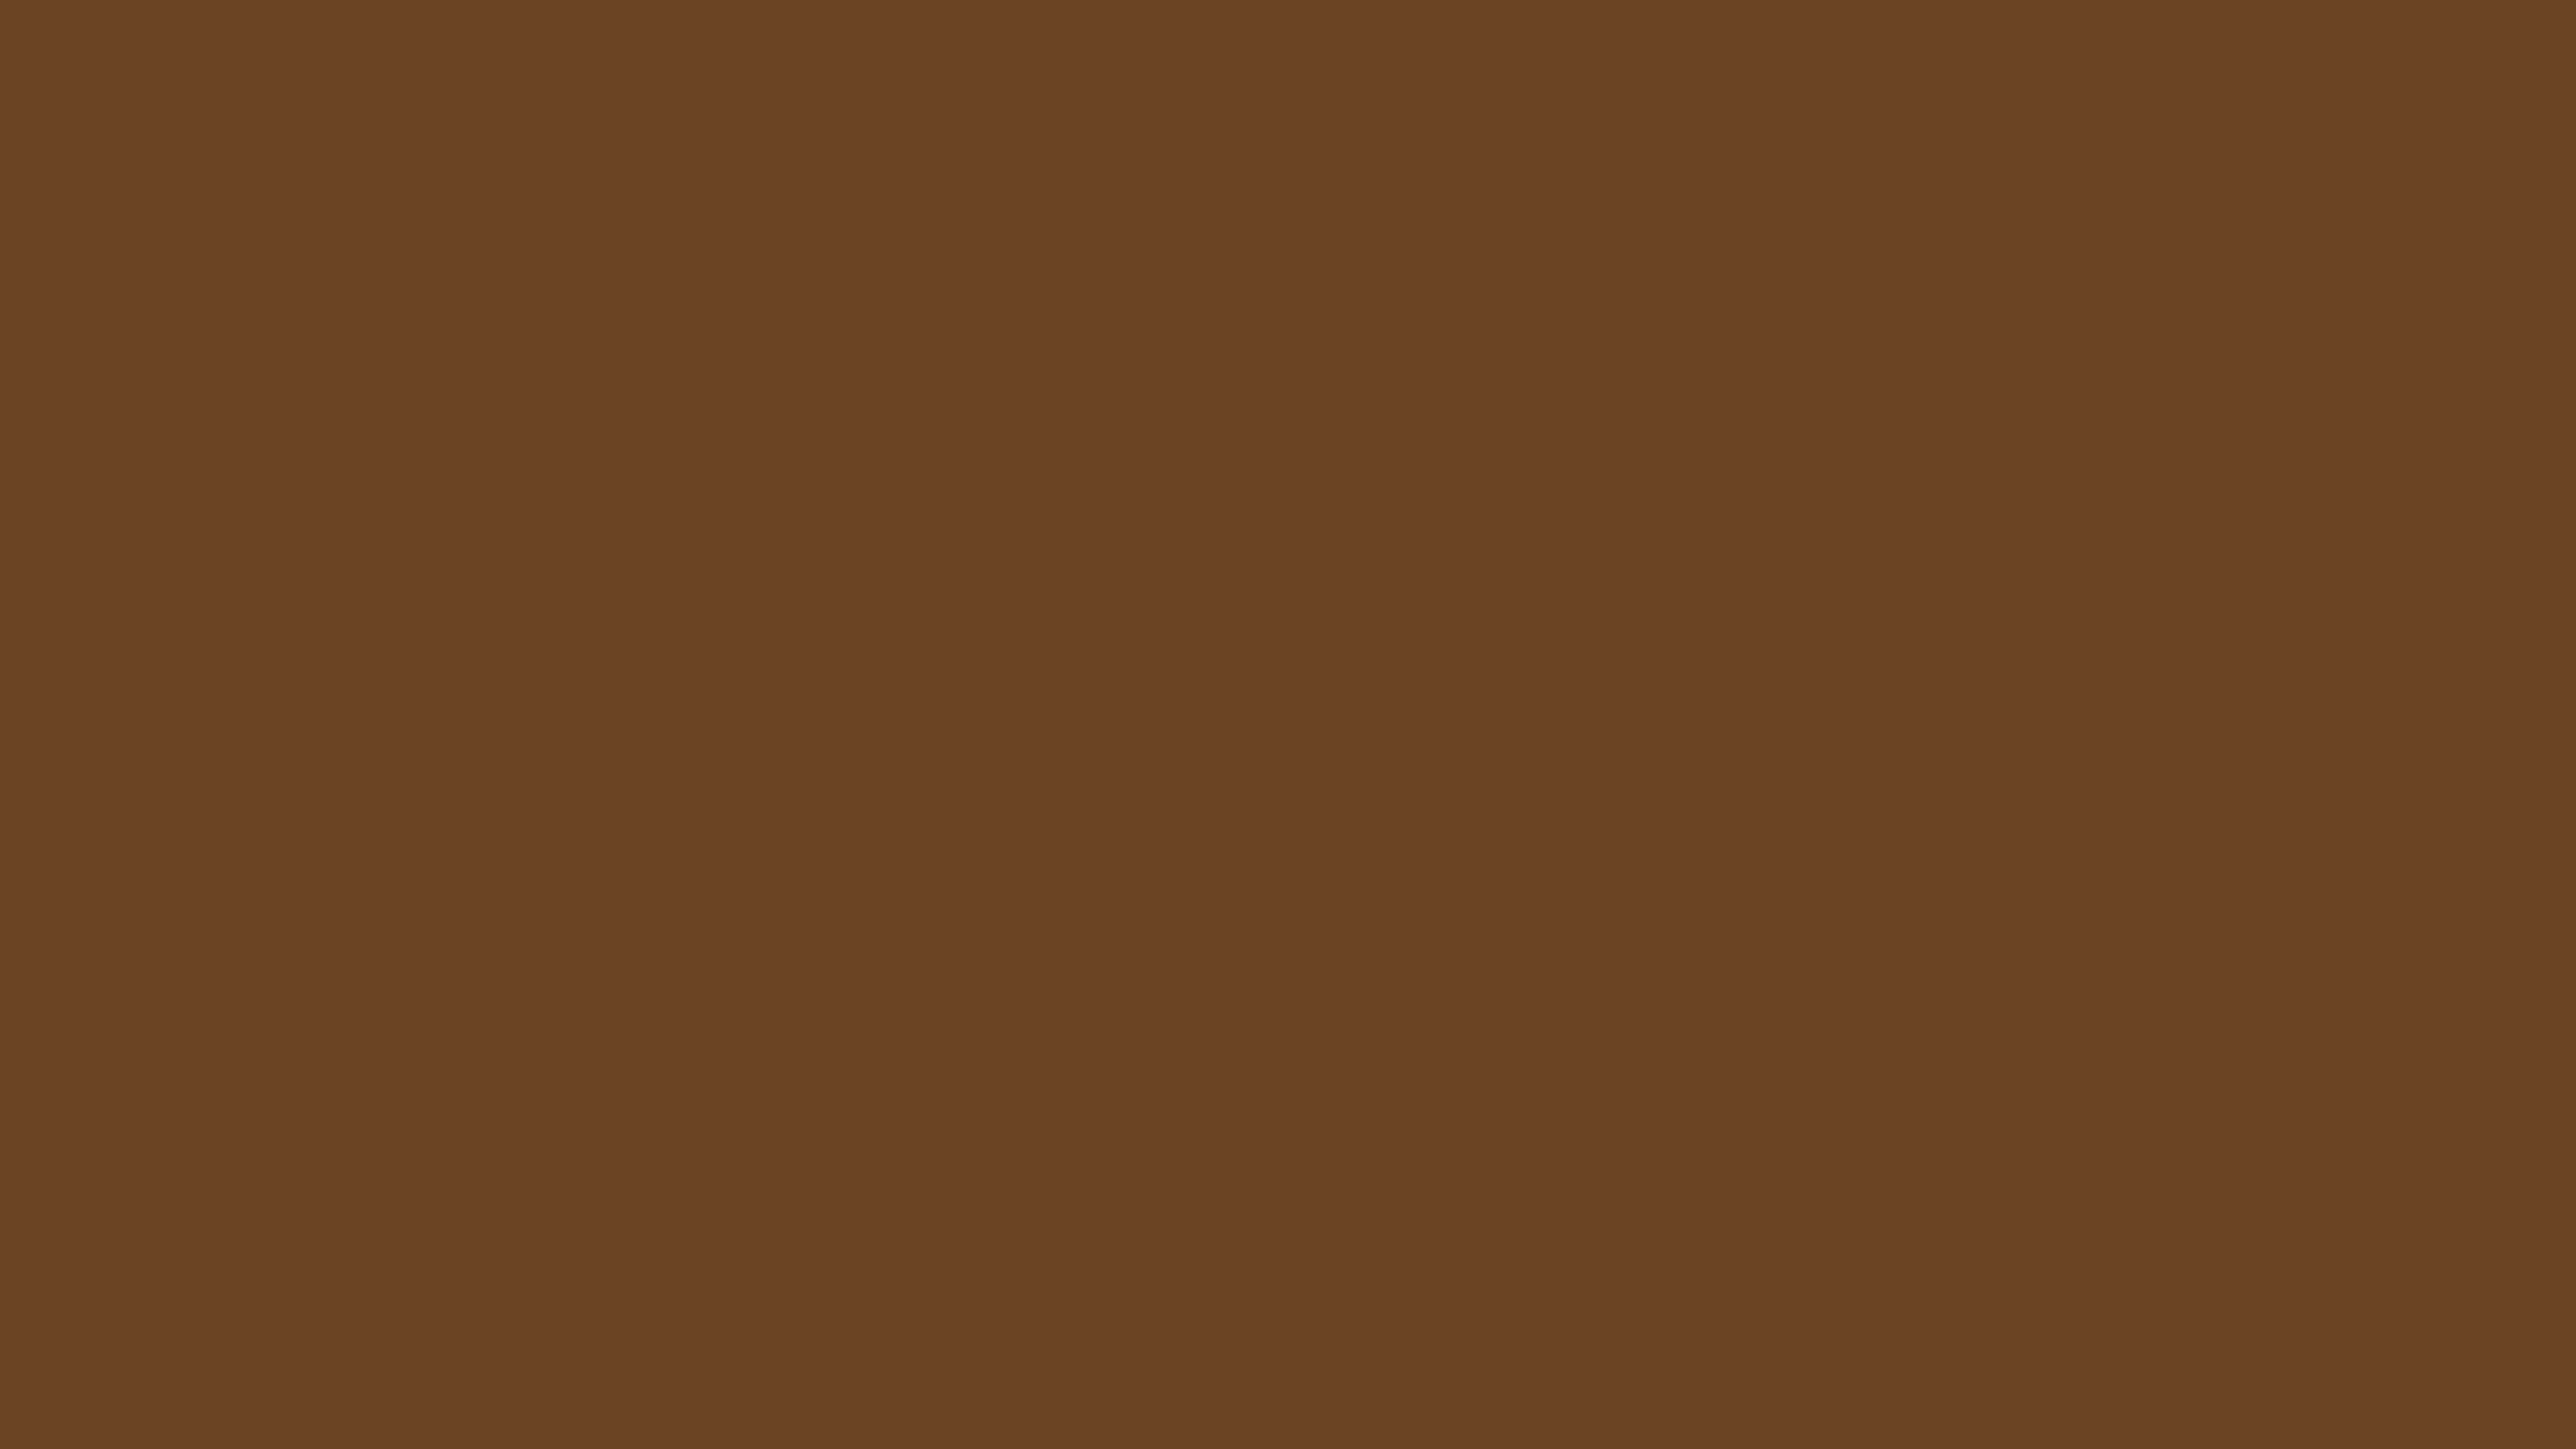 3840x2160 Brown-nose Solid Color Background